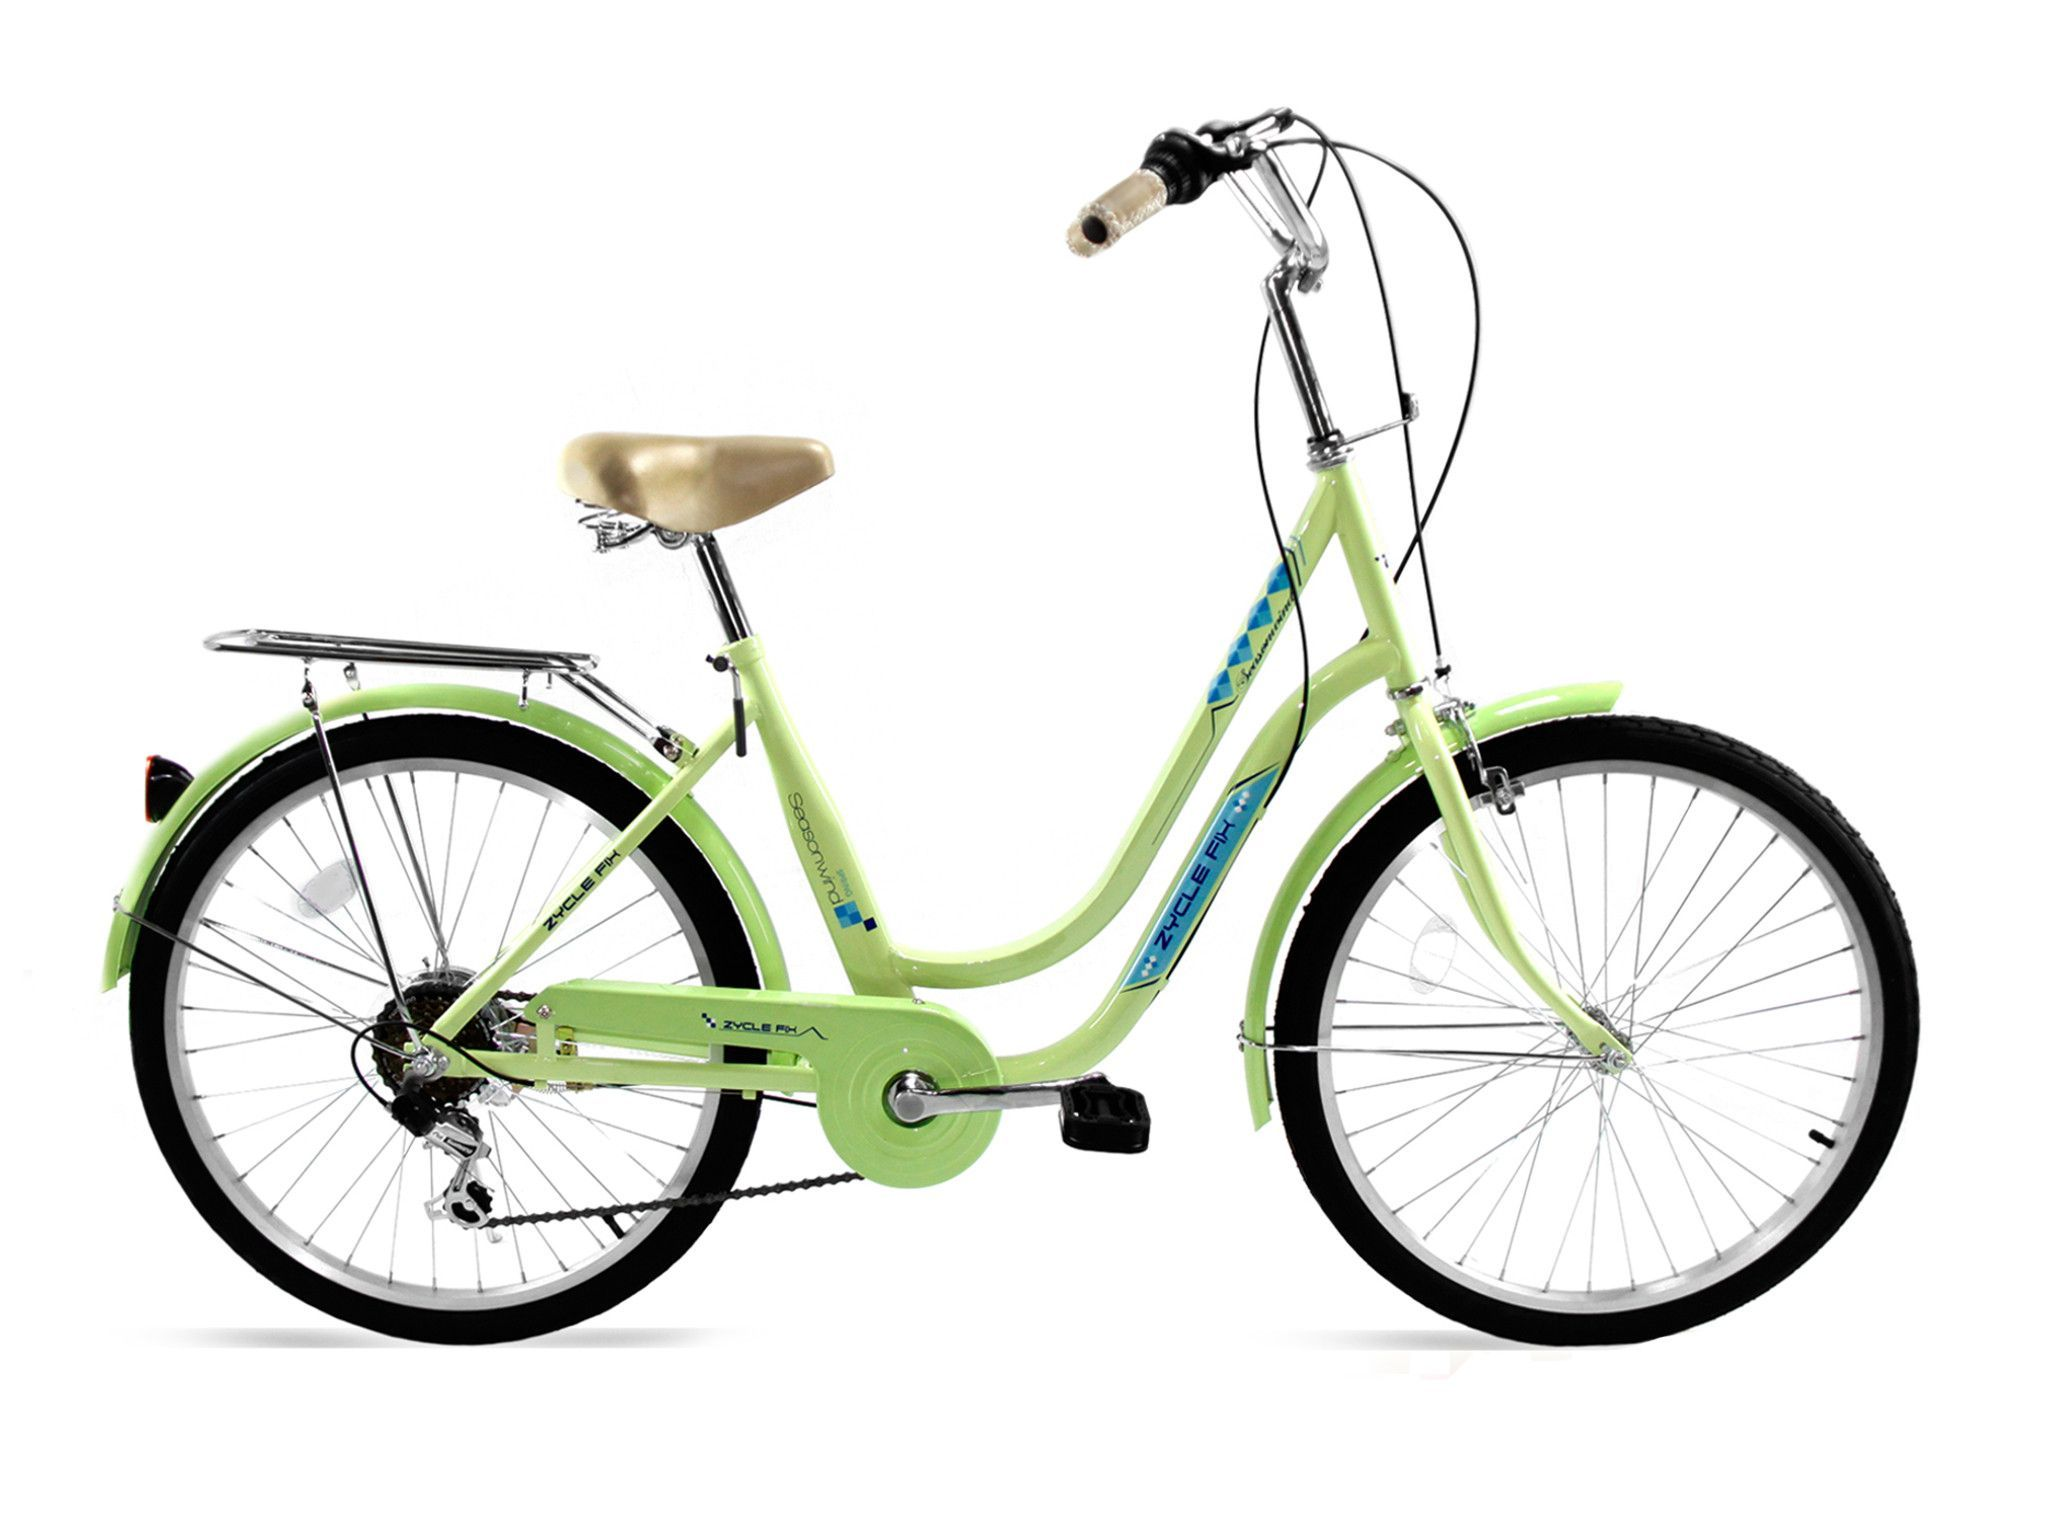 Zycle fix 24 city commuter bike shimano 6 speed lime green